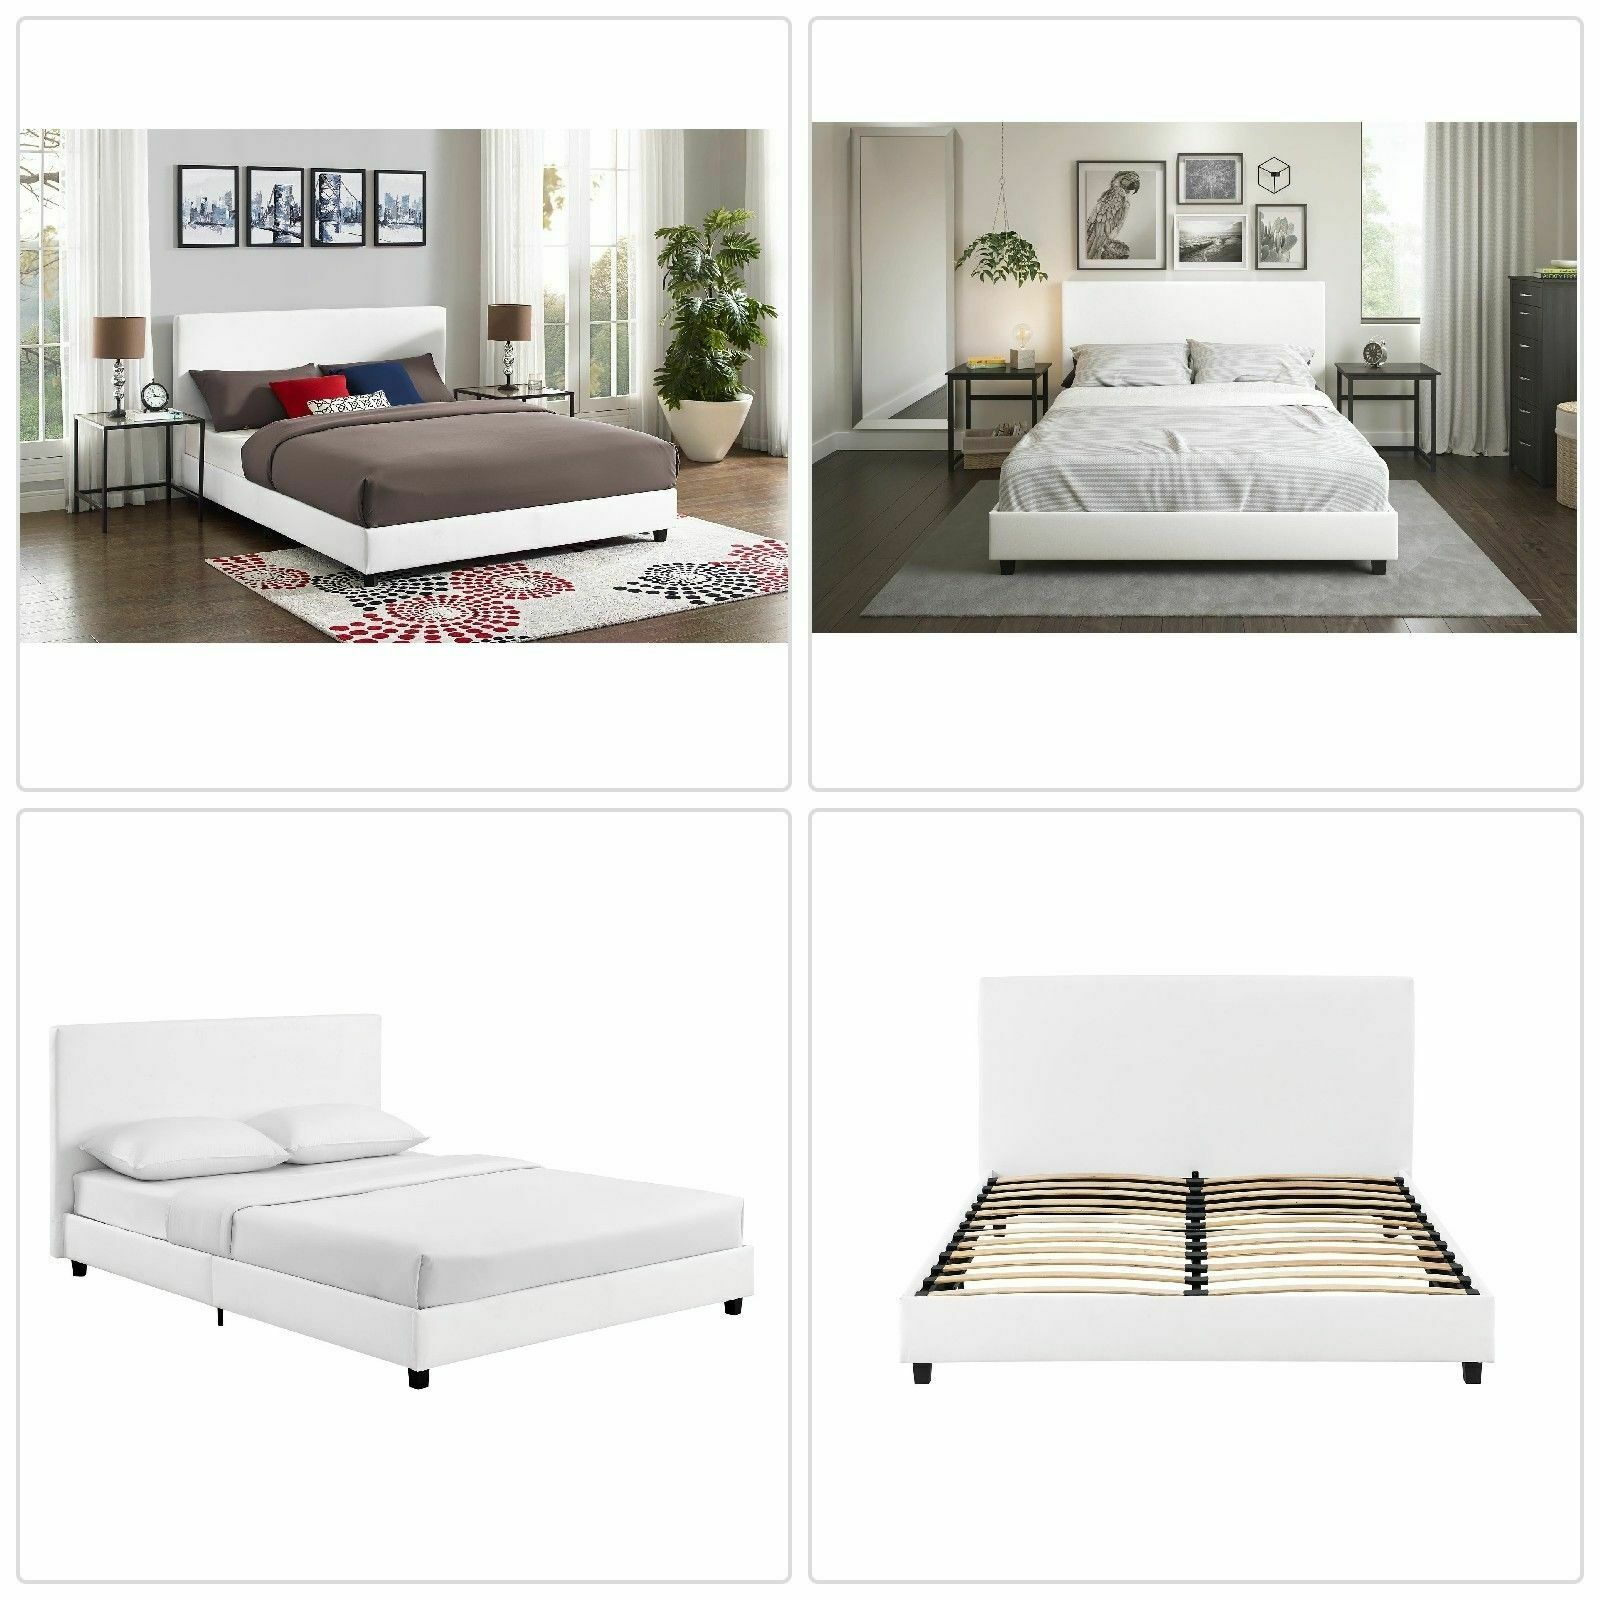 Details About Mainstays Upholstered Bed Full White Faux Leather New